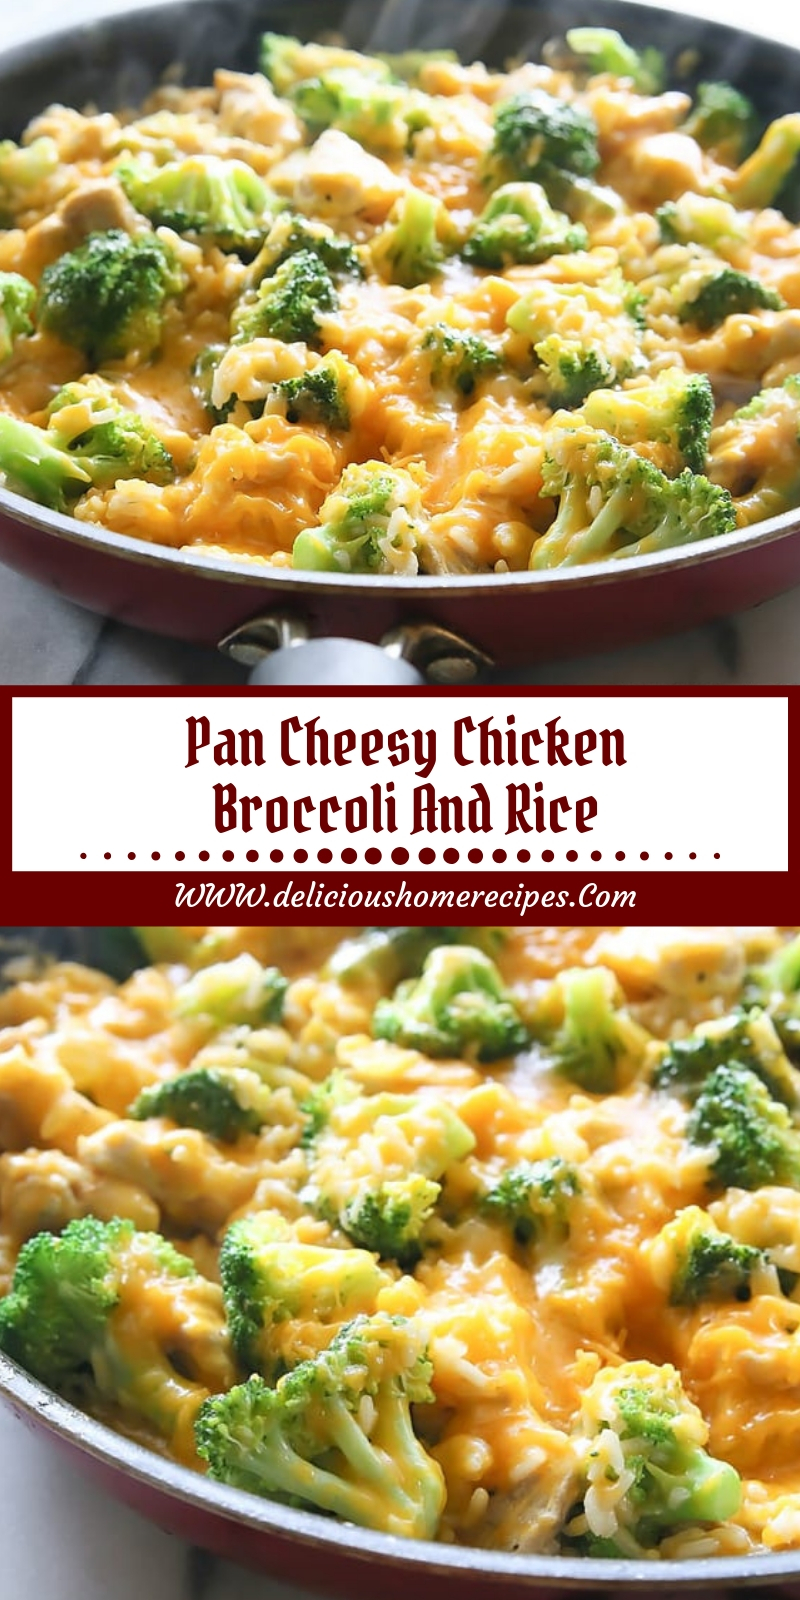 Pan Cheesy Chicken Broccoli And Rice